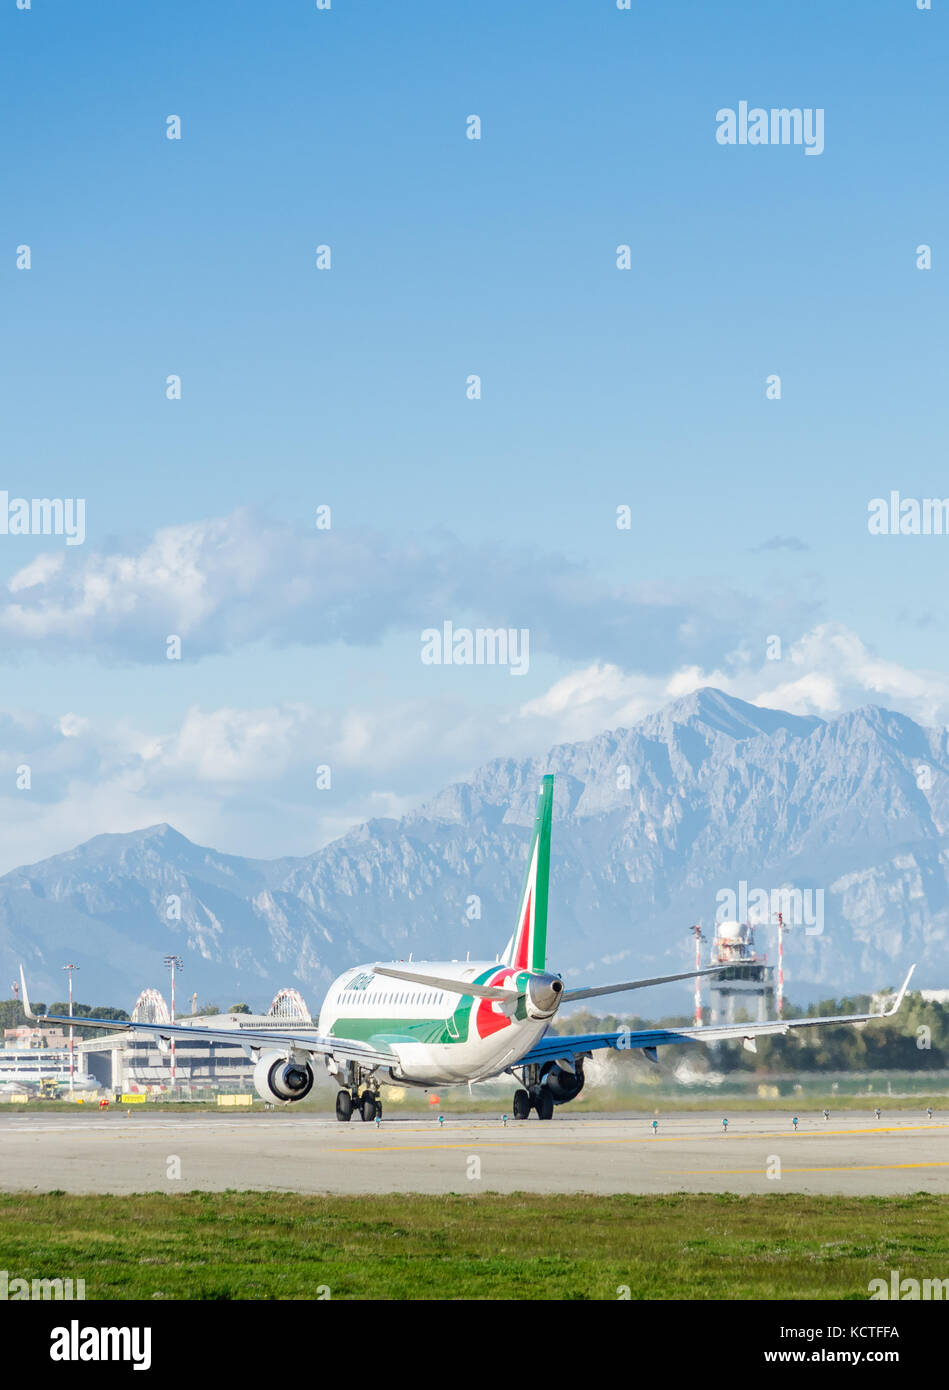 An Alitalia Embraer E175LR Cityliner taxiing at Milan Linate Airport. These planes operate short-haul flights within - Stock Image